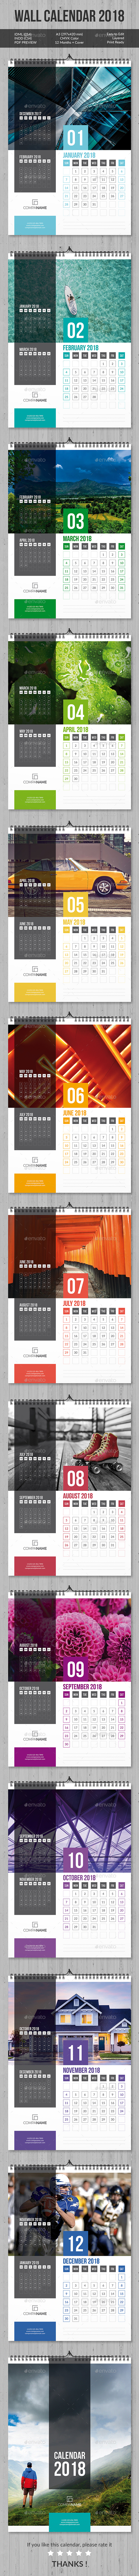 GraphicRiver Wall Calendar 2018 20383709